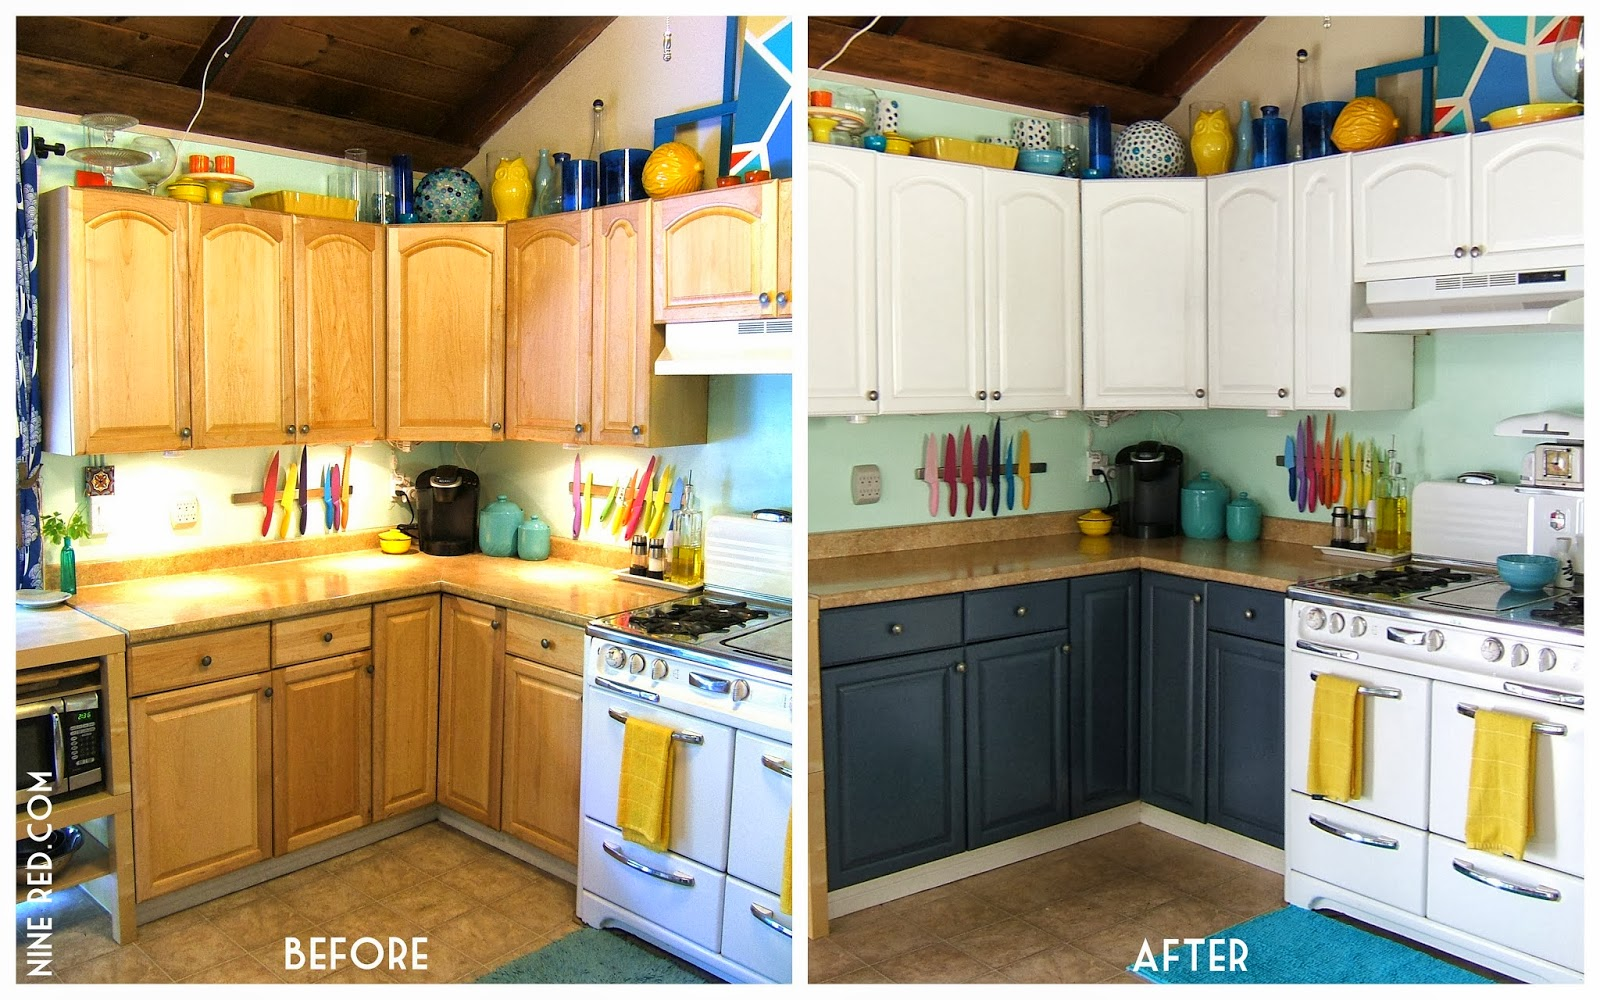 Painted 60s Kitchen Cabinets Spray Painting Kitchen Cabinets Before And After